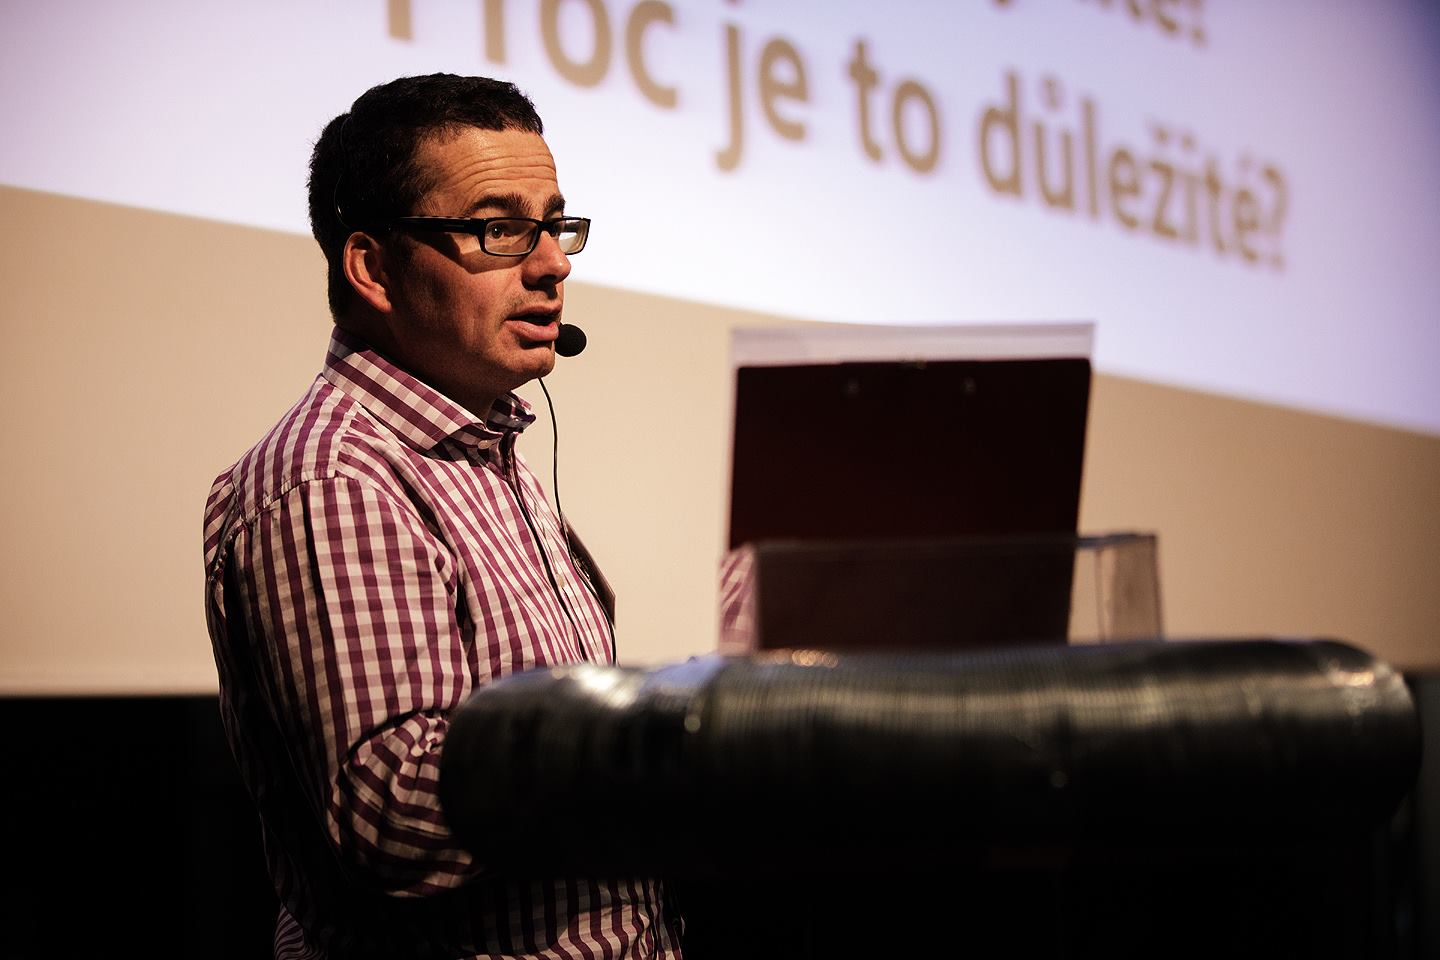 Jason at a recent European conference.